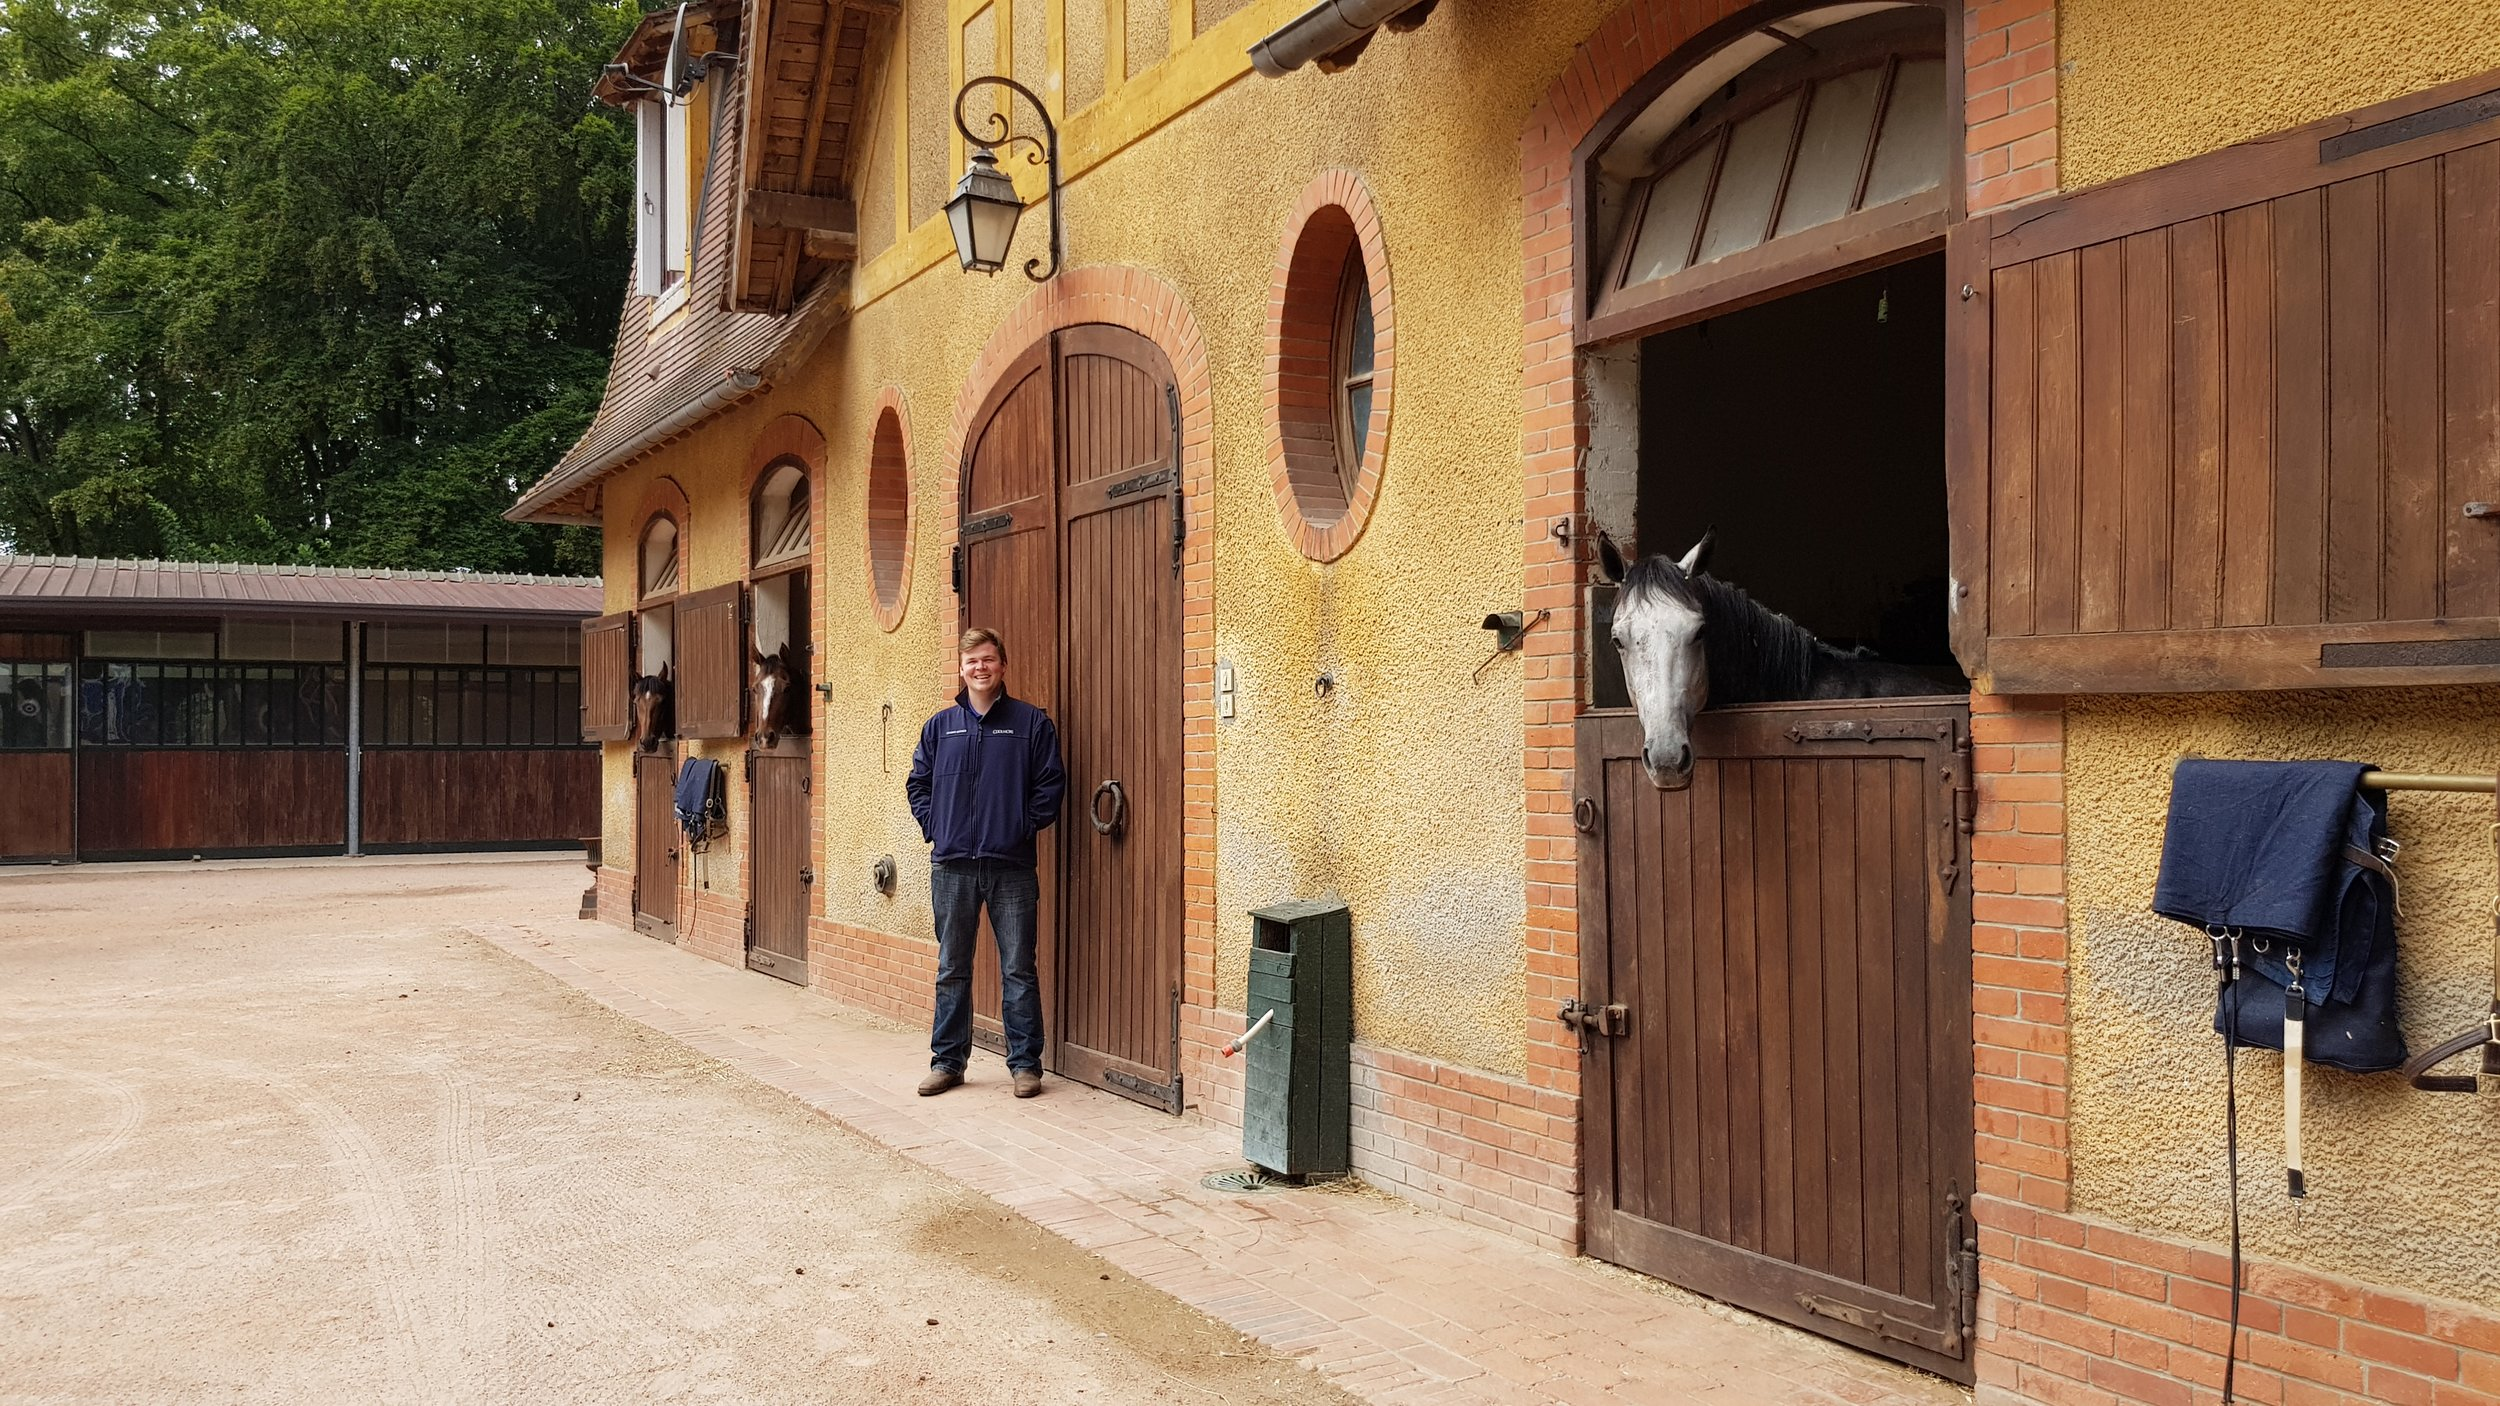 Starting out - the latest update from new trainer - Gavin Hernon      Saturday 18th August 2018, a dream start and a day that will live very long in the memory.     To win a Deauville maiden, an hour before the hammer starts to fall on some of the best-bred yearlings in Europe would be a special moment for most trainers. I still need to pinch myself to be sure I'm not in a dream to have won the Prix Des Etalons Shadwell with my first runner.     Icefinger is a horse we have always thought might have a touch of class. We had given him Group entries before his race but we might opt for a Listed race to allow him grow up. His very relaxed manner at home just meant that it took him a bit of time to come to hand. Despite our belief in him, I never thought he would be able to beat nice horses who had experience in regarded maidens at the first time of asking. That day was a nice way to culminate the start-up phase of our yard.     I firmly believe that the authorization and licensing process in France is the best grounding one can get. That said, it still doesn't quite prepare me for what comes next. Establishing a company in France and getting all the necessary paperwork in place isn't the most straightforward and this is probably an area where France lags behind other neighbouring countries. Admittedly, through August most of Europe takes the month as a holiday which adds to the timeline to do anything. It probably doesn't help that I'm wired to prefer spending time outside with the horses.     I am fortunate that I have an excellent accounting firm in Equicer guiding me through everything step by step and now we're fully set up and running. Even my bank account got held up in the bureaucracy so I'm grateful to my suppliers for their patience.     I feel it is necessary to say that Olivier Delloye of France Galop is an exception and his help throughout has been nothing short of phenomenal given his busy schedule and without him, Icefinger probably would not have been ab